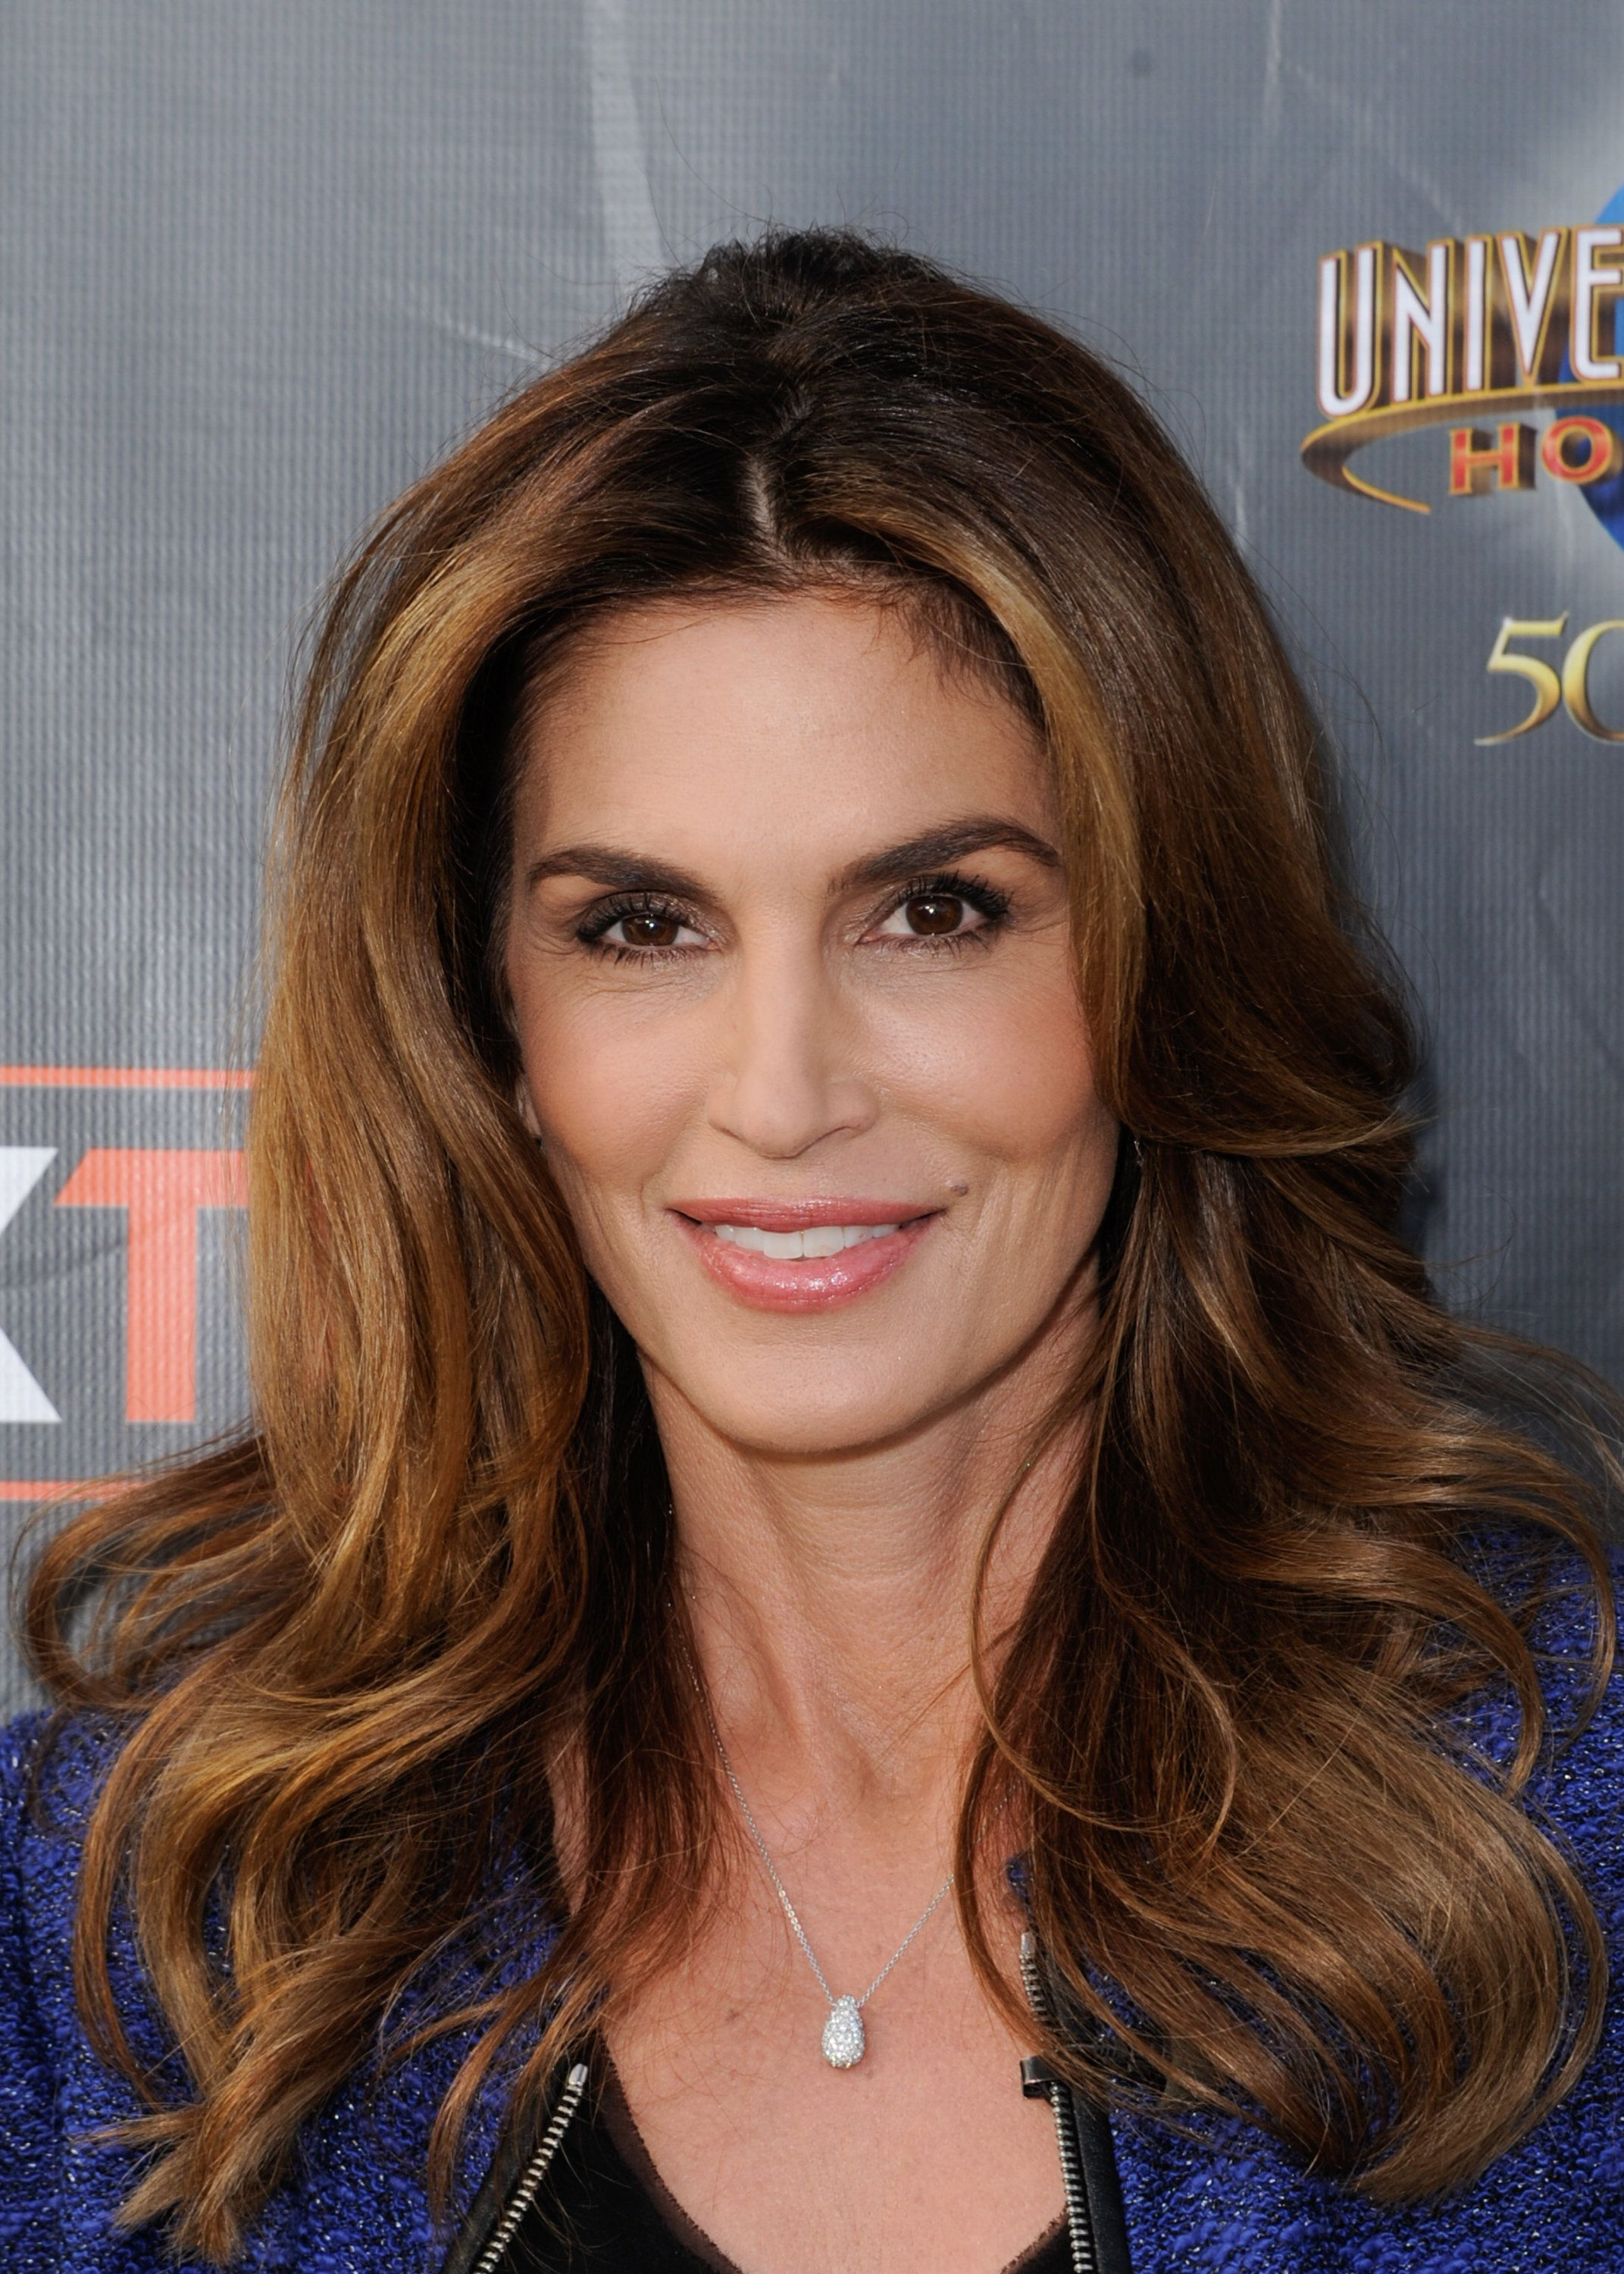 UNIVERSAL CITY, CA - NOVEMBER 04:  Cindy Crawford visits 'Extra' at Universal Studios Hollywood on November 4, 2015 in Universal City, California.  (Photo by Noel Vasquez/Getty Images)